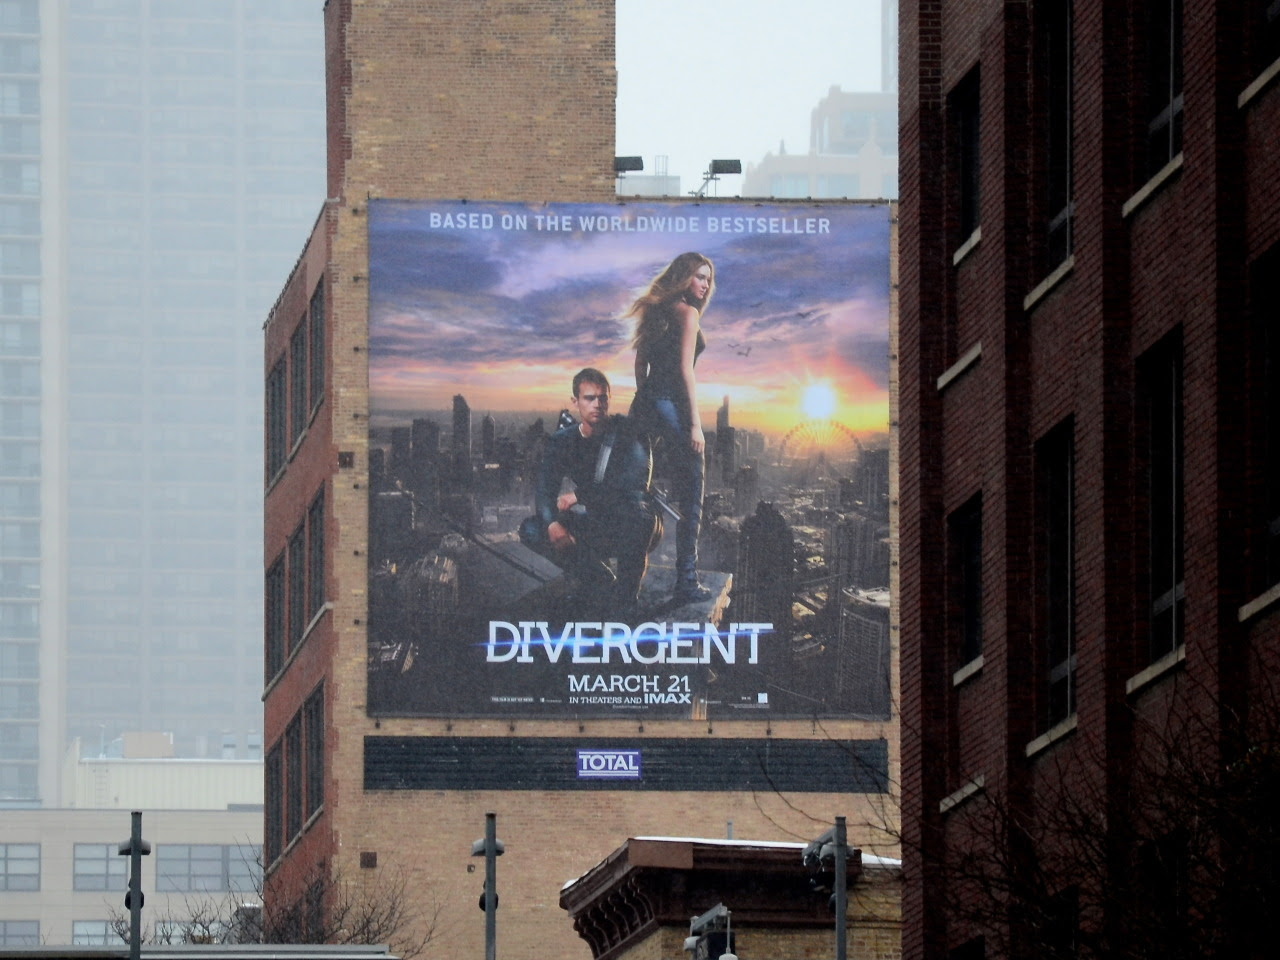 katherinetegenbooks:  Divergent billboard in Chicago (W Superior Street & Wells St). Very cool.